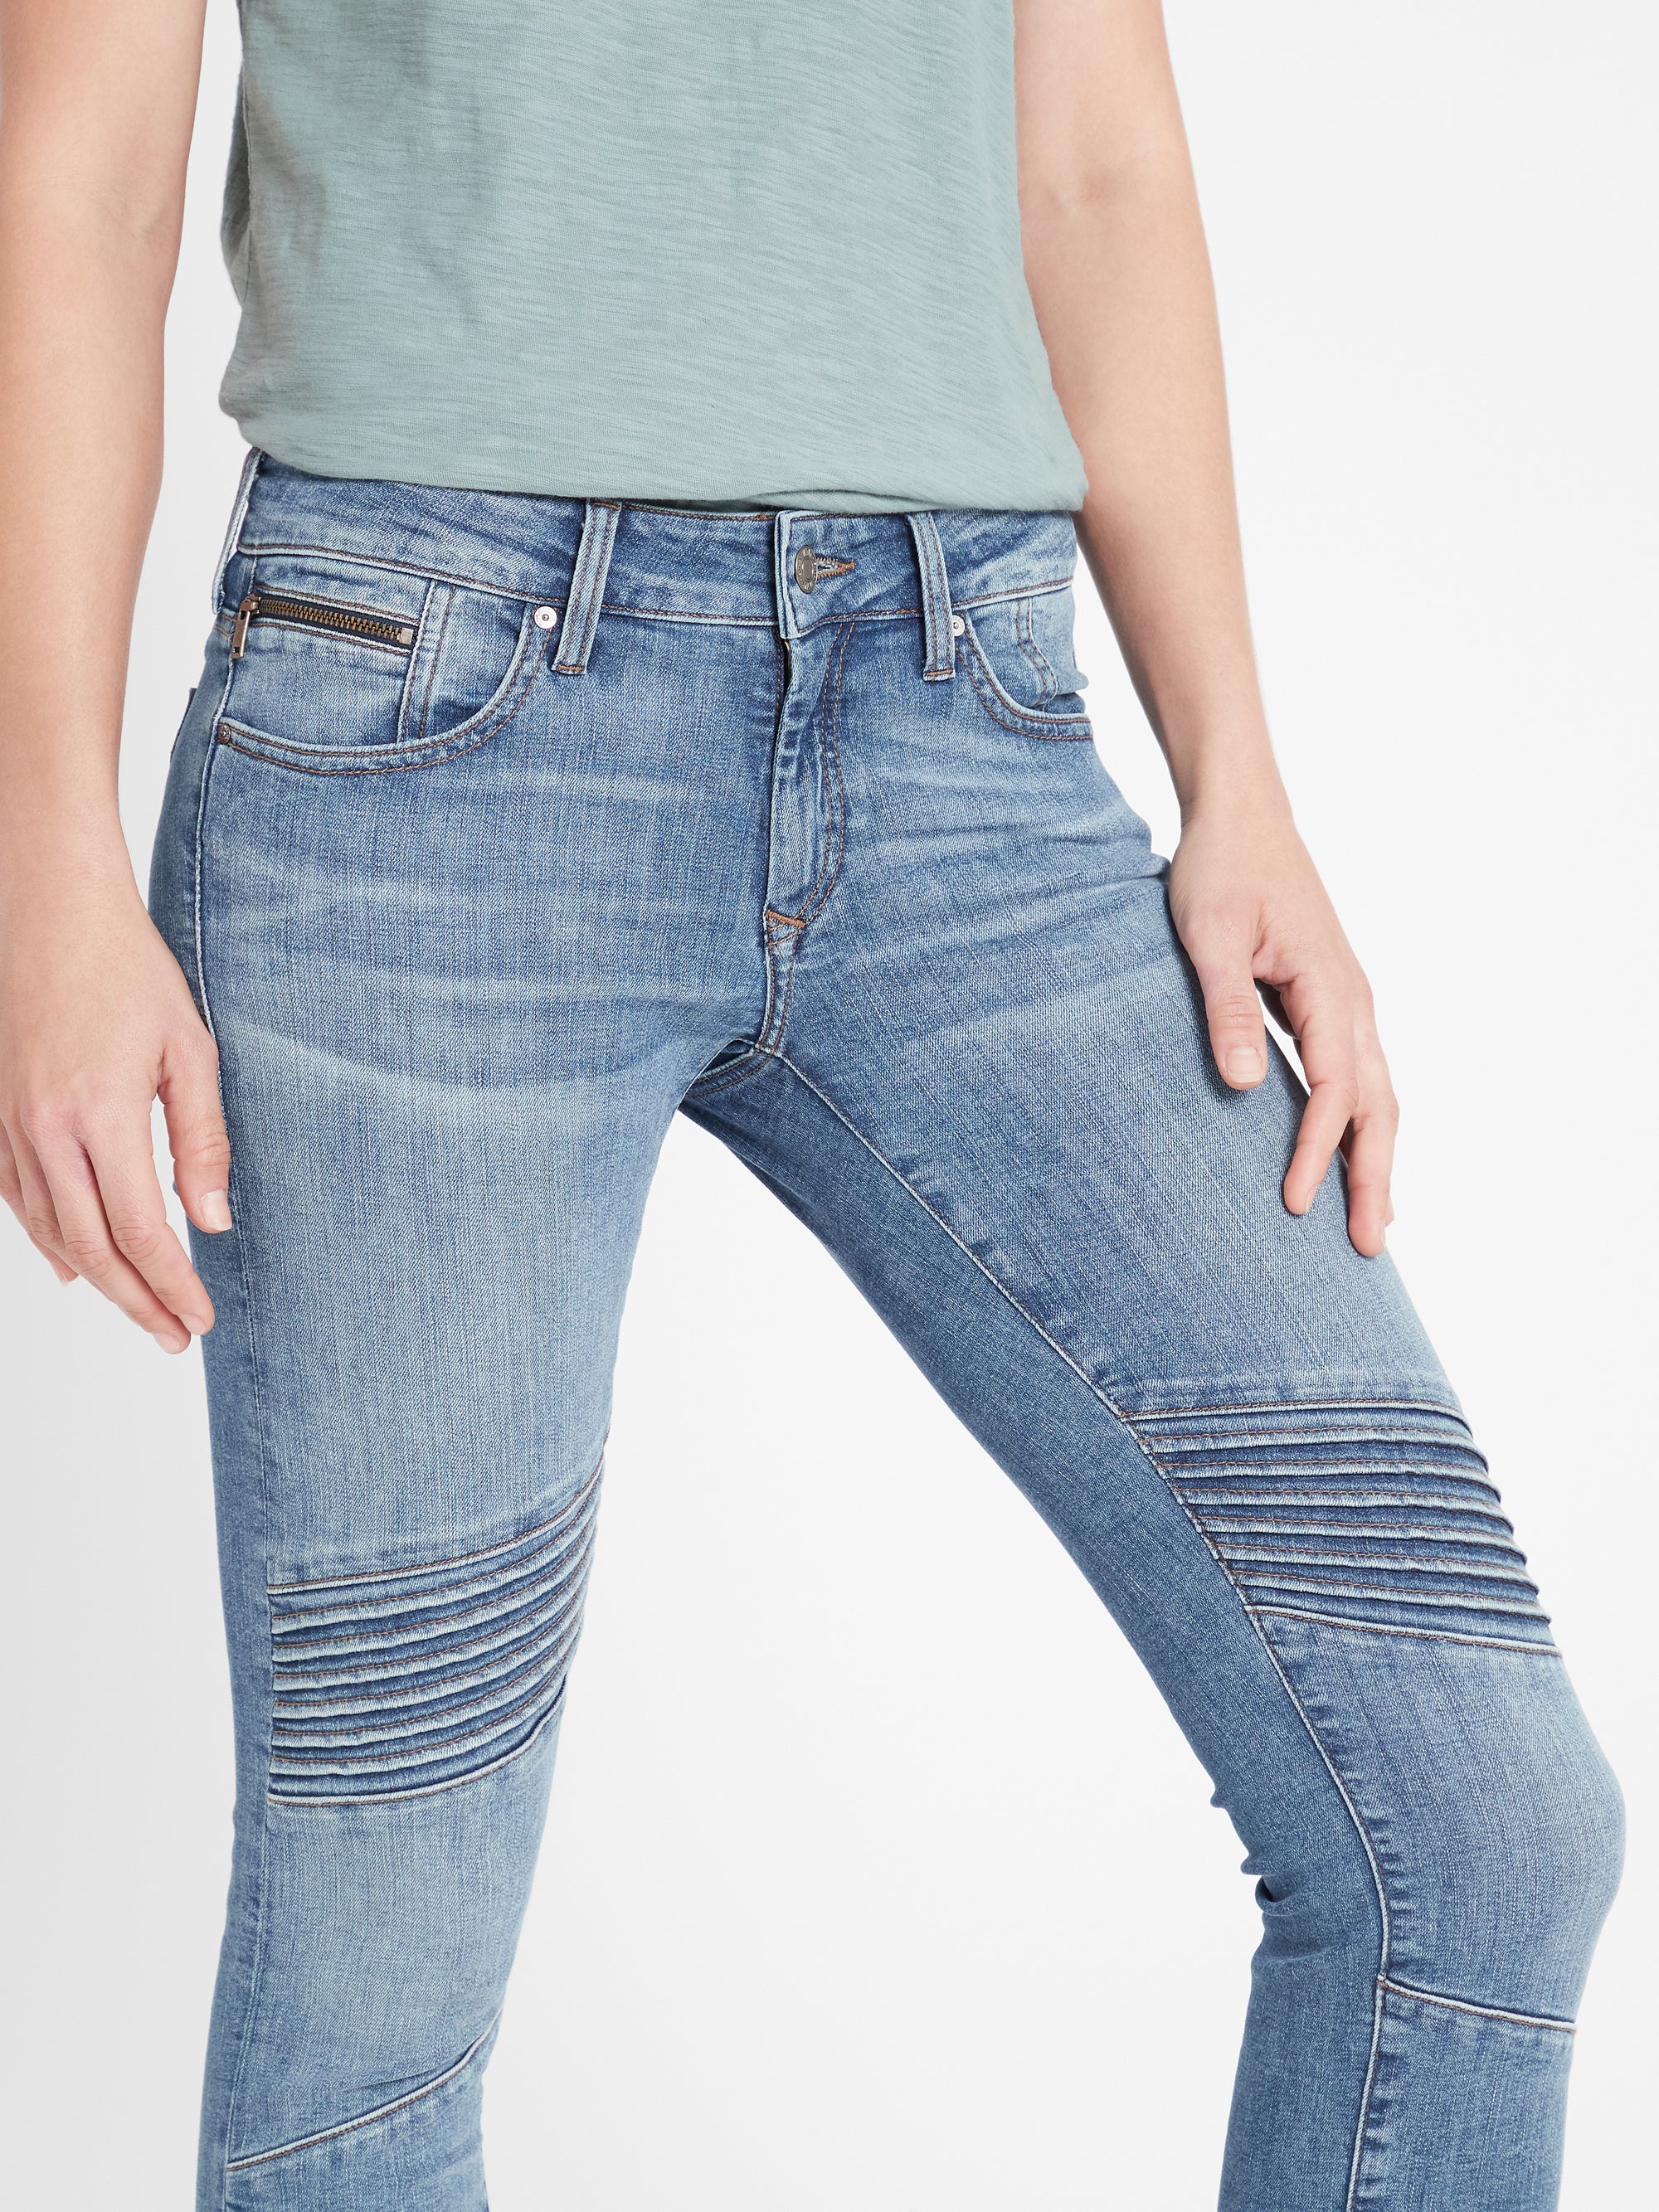 Aura Skinny Ankle Biker Jeans in Mid Brushed Glam